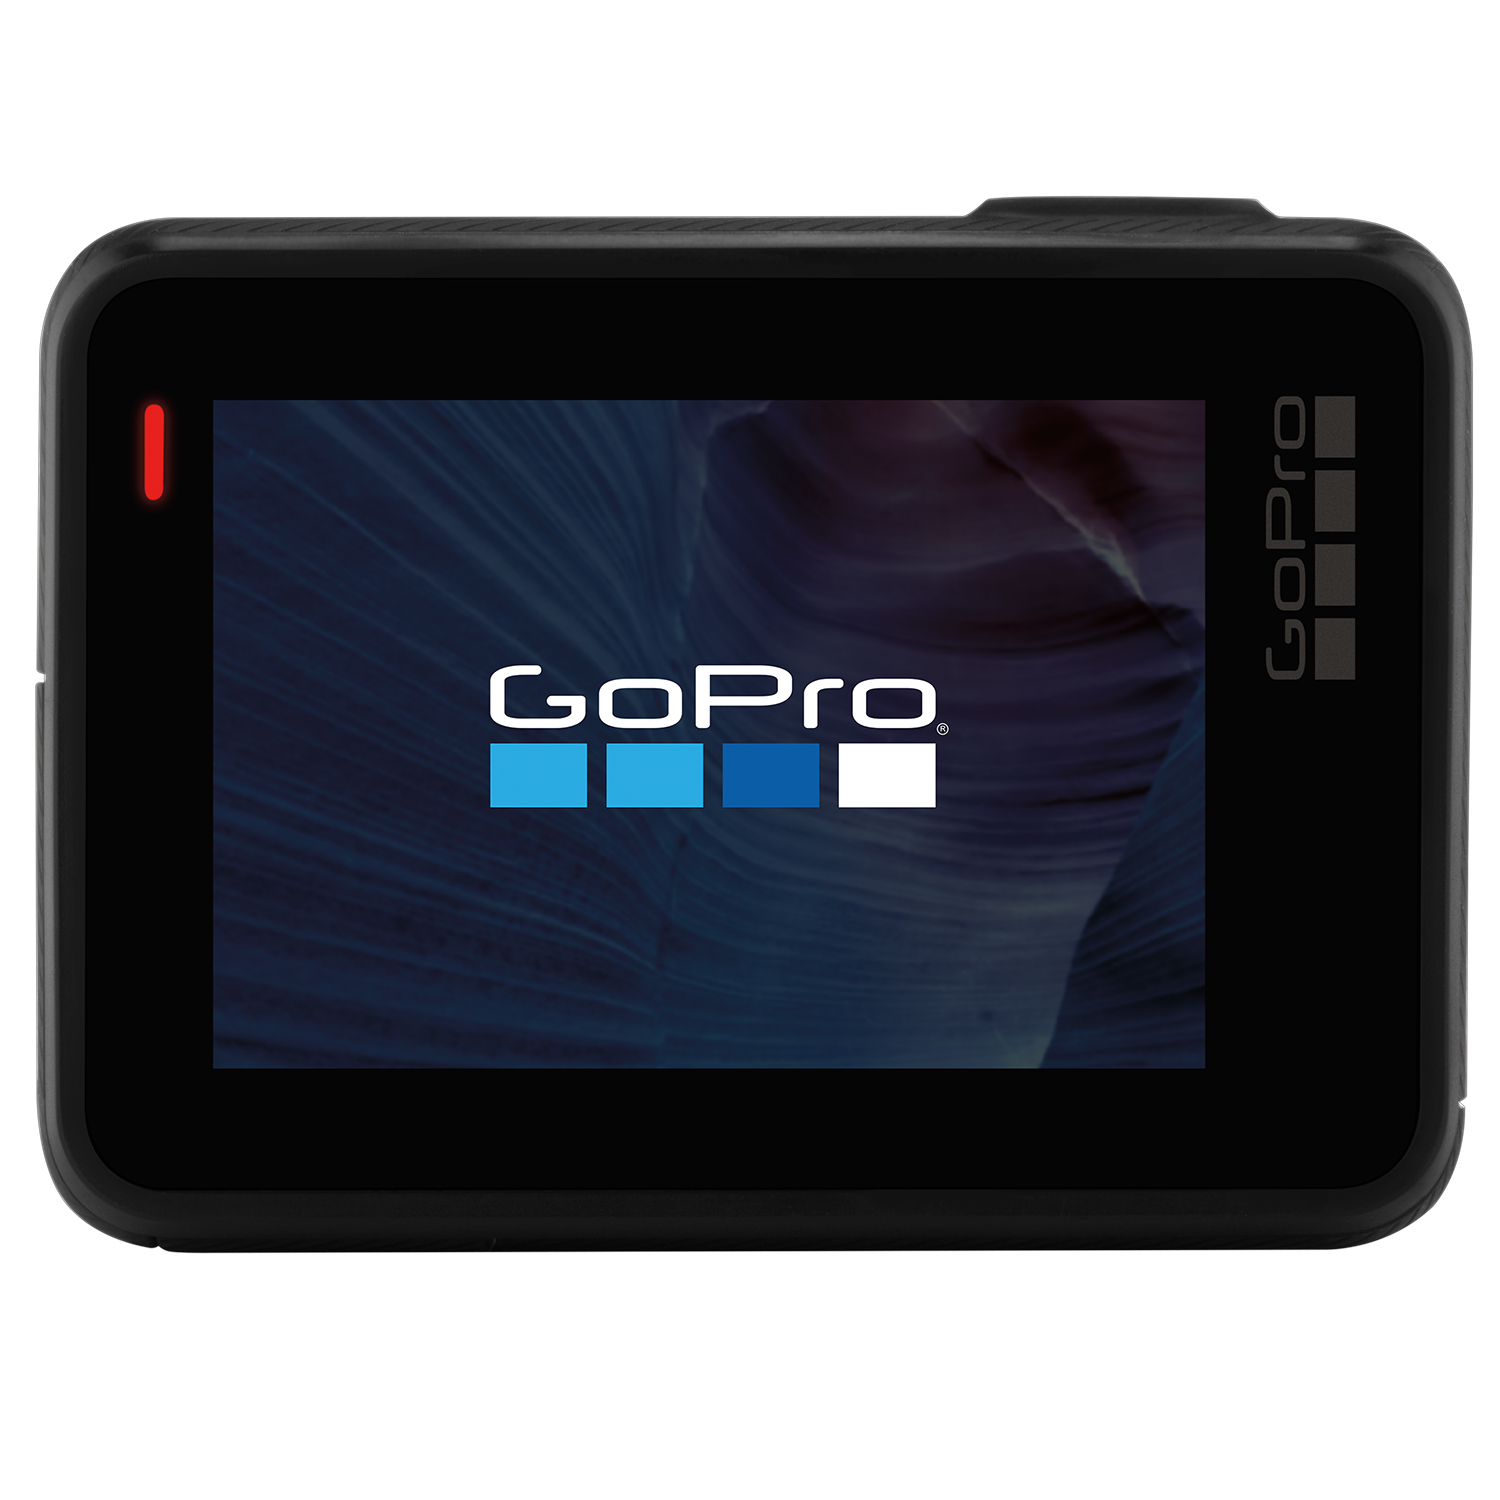 b555288085881 GoPro HERO5 Black Camera - Walmart.com